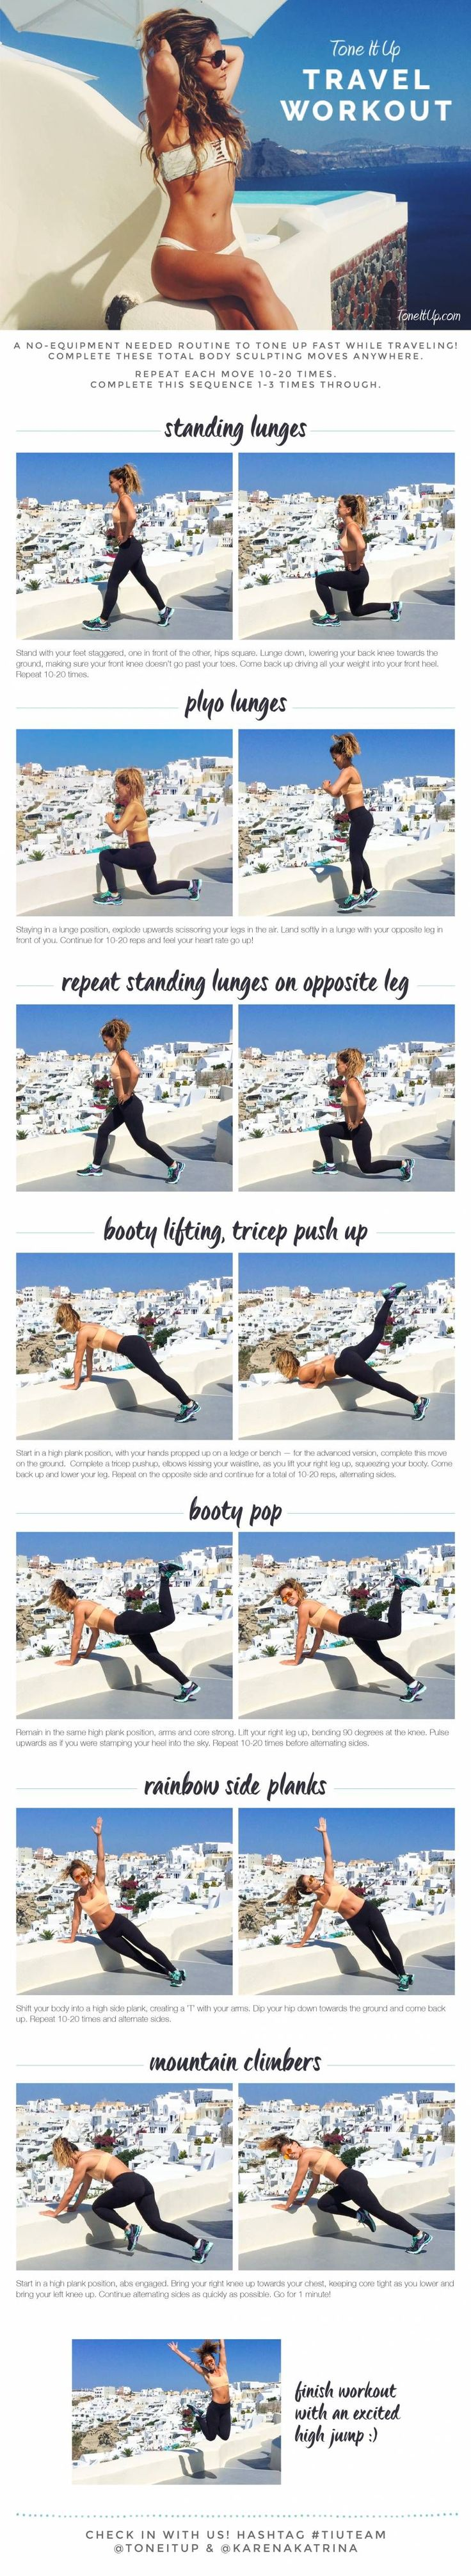 Tone It Up Travel Workout